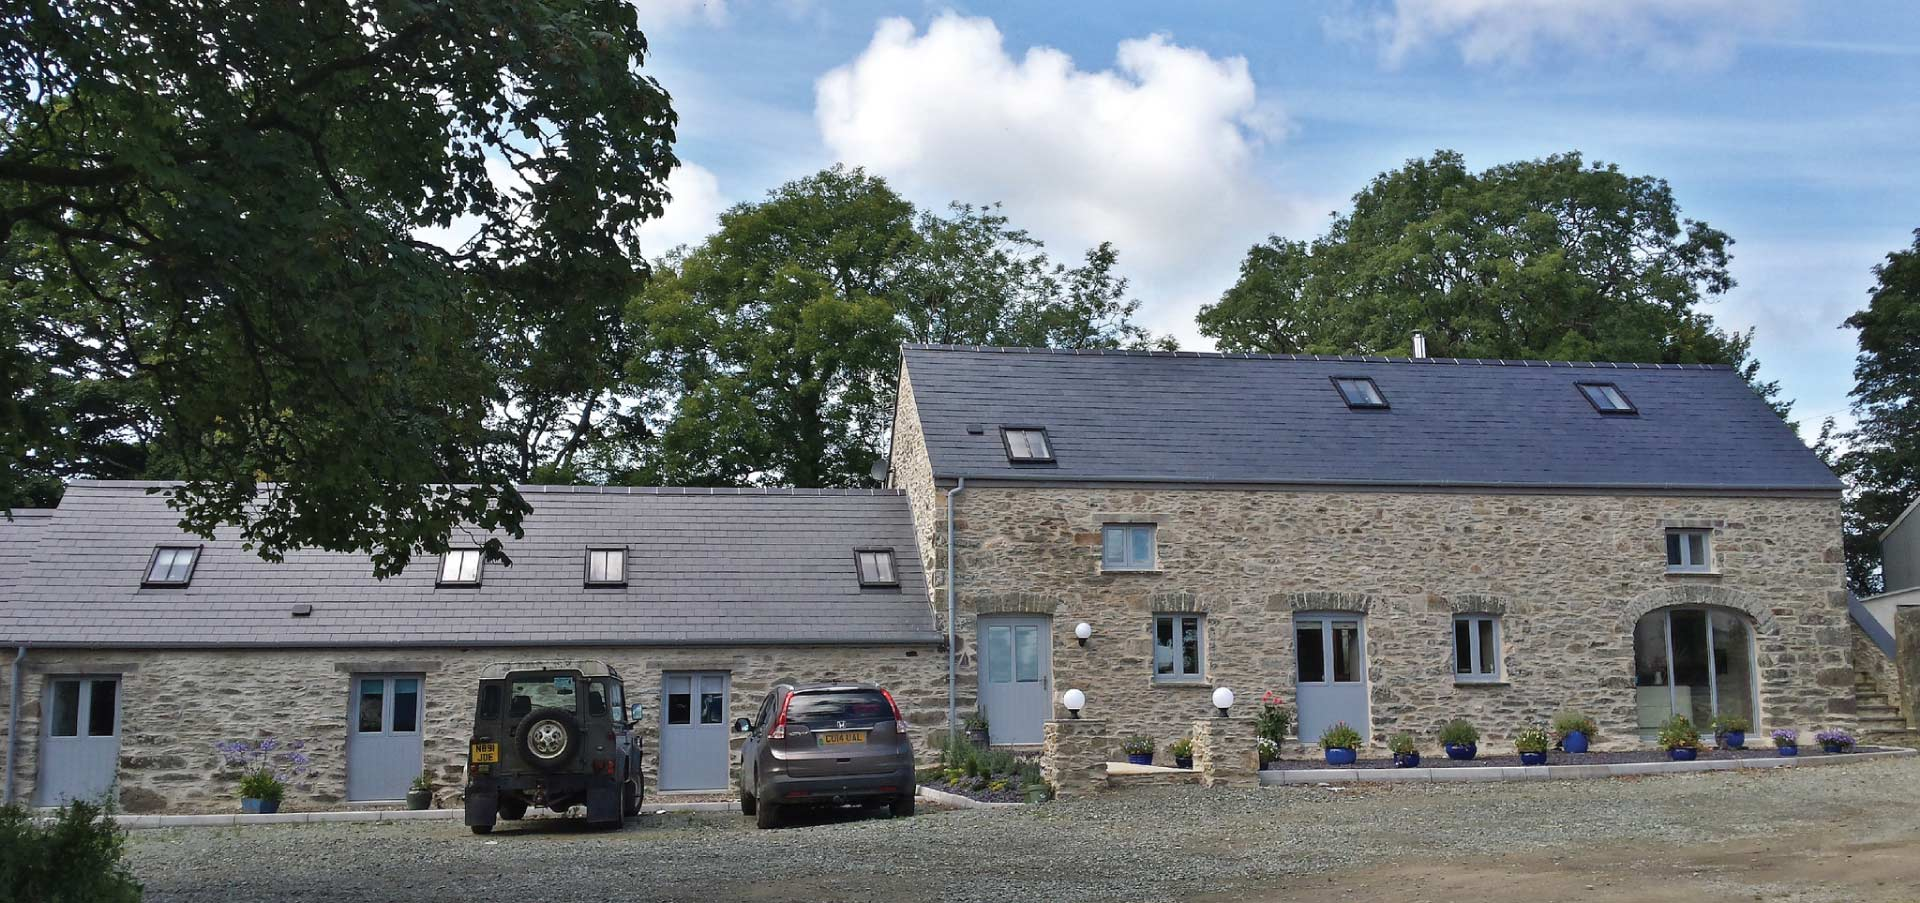 Rhostwarch Pembrokeshire Holidays Bed and Breakfast 5 Star